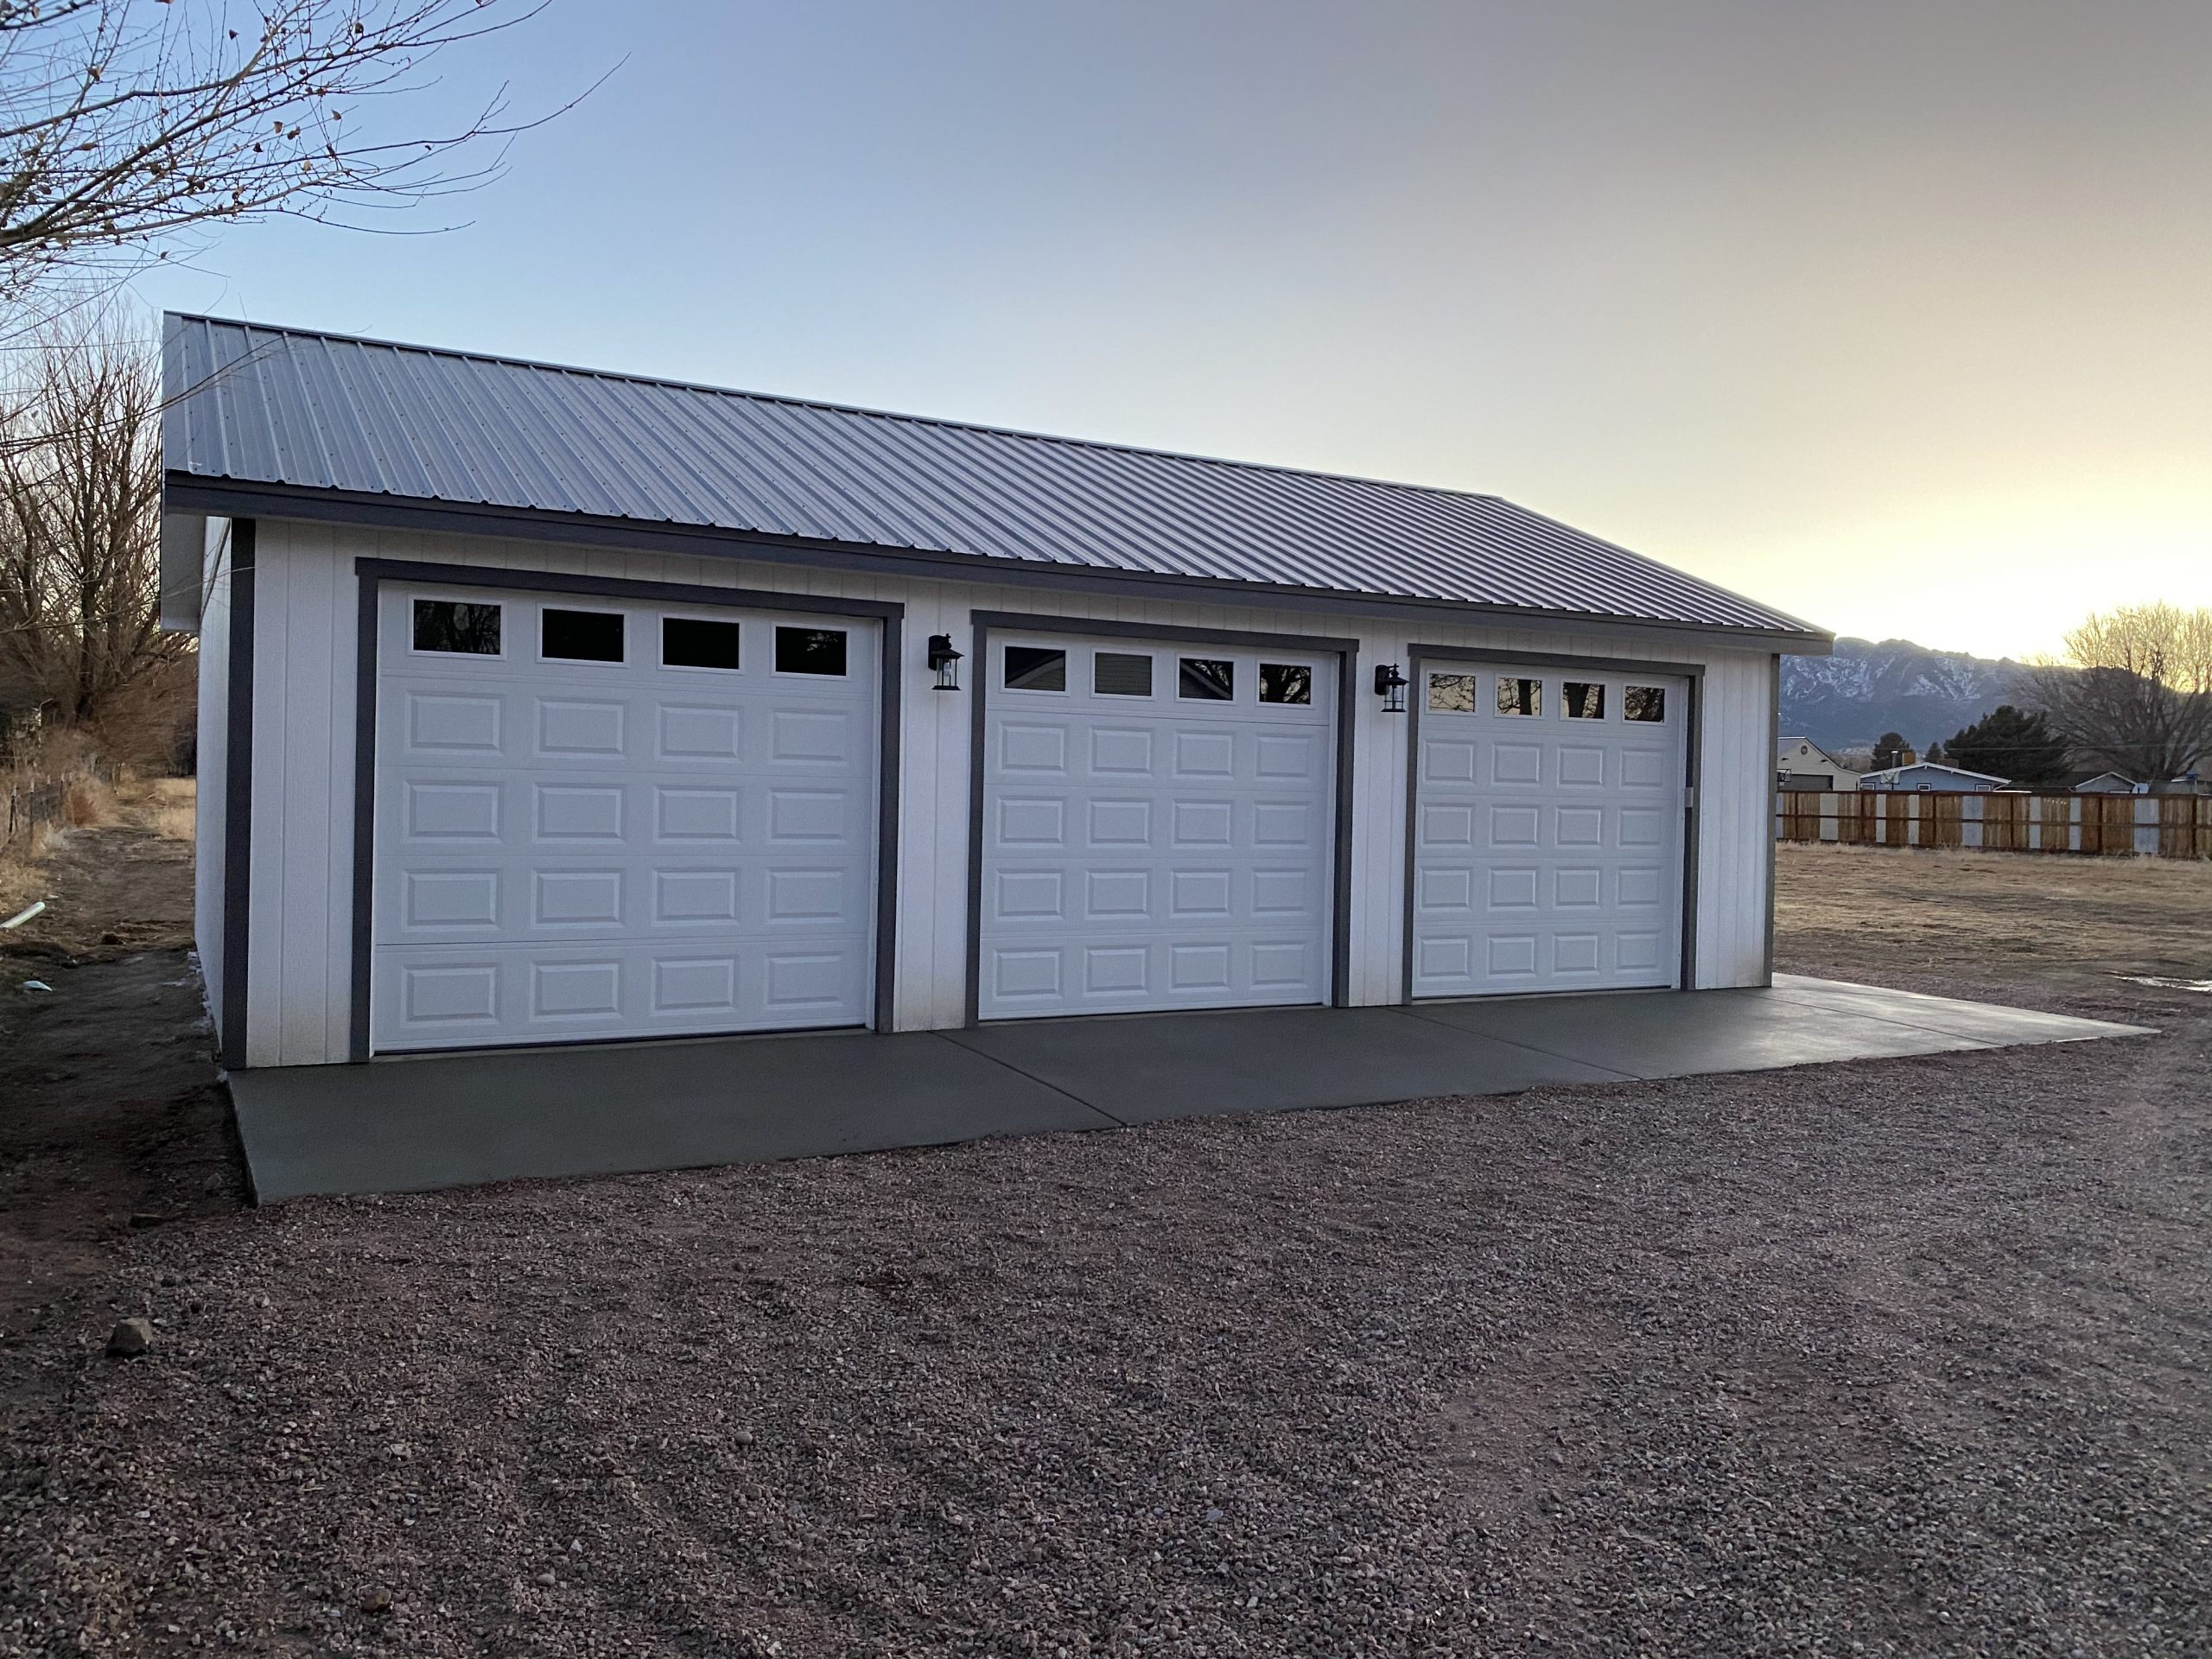 Storage Sheds Delivered or Built Onsite? 13